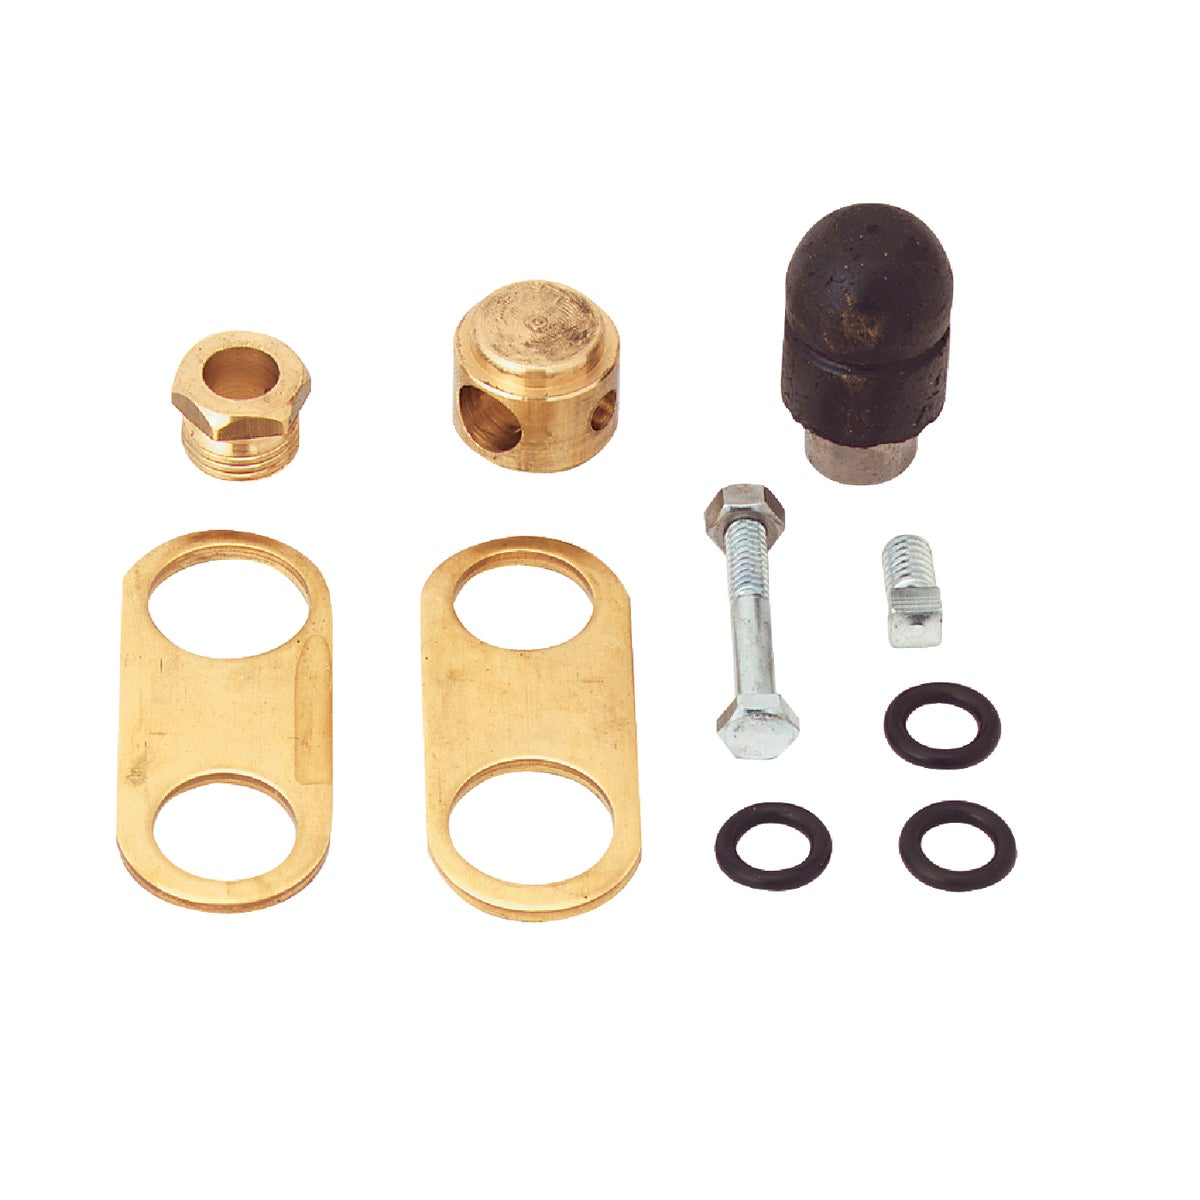 HYDRANT PARTS KIT - 850SB by Simmons Mfg Co